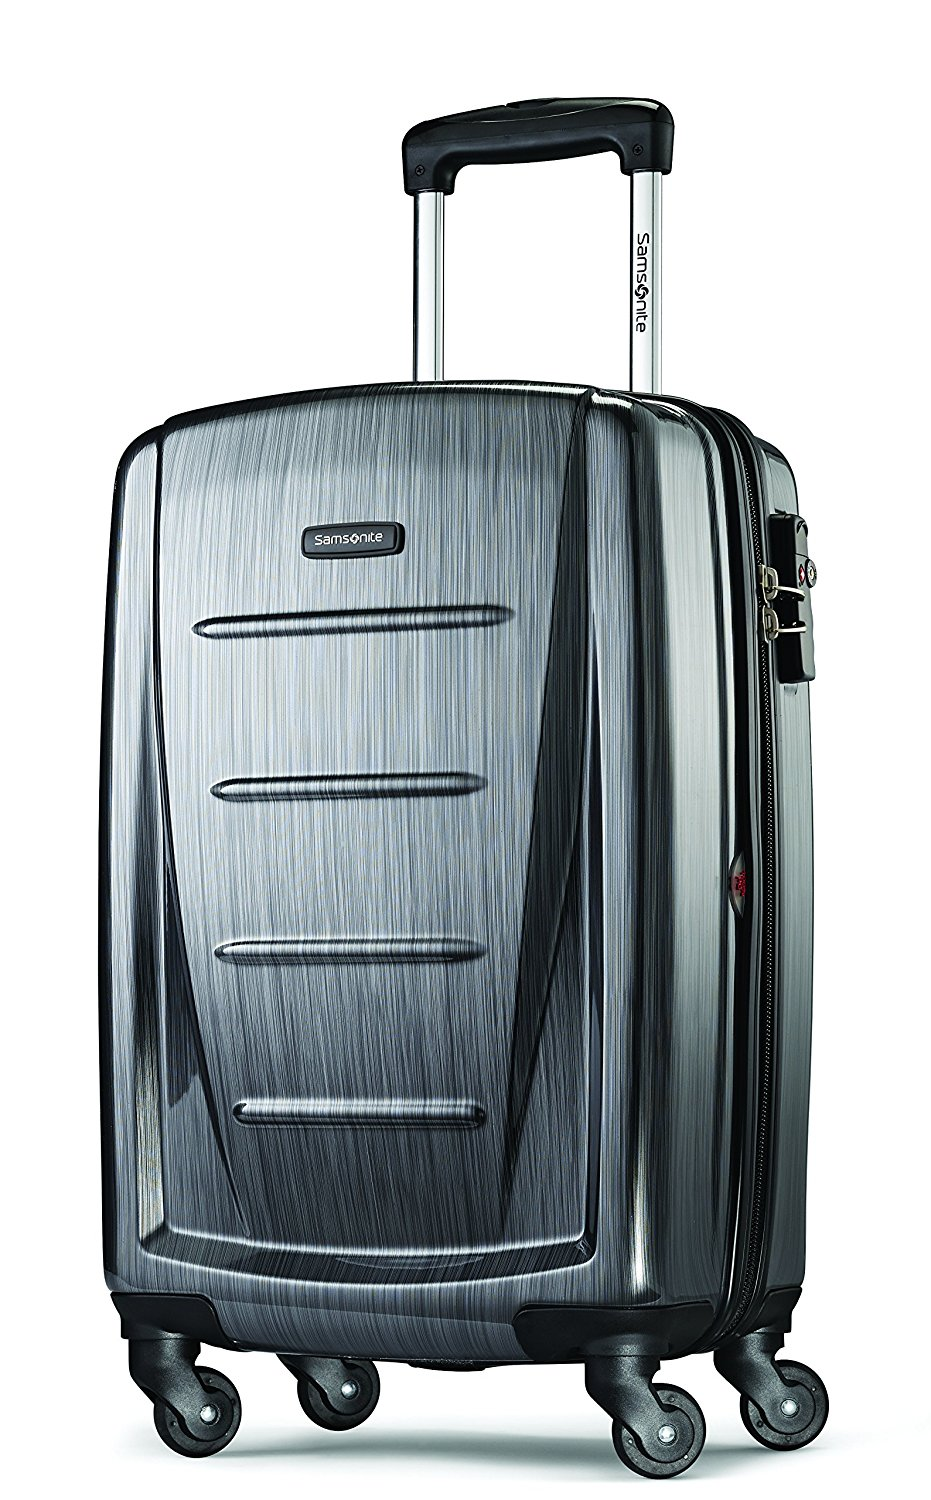 Samsonite Winfield 2 Hardside 20 Luggage